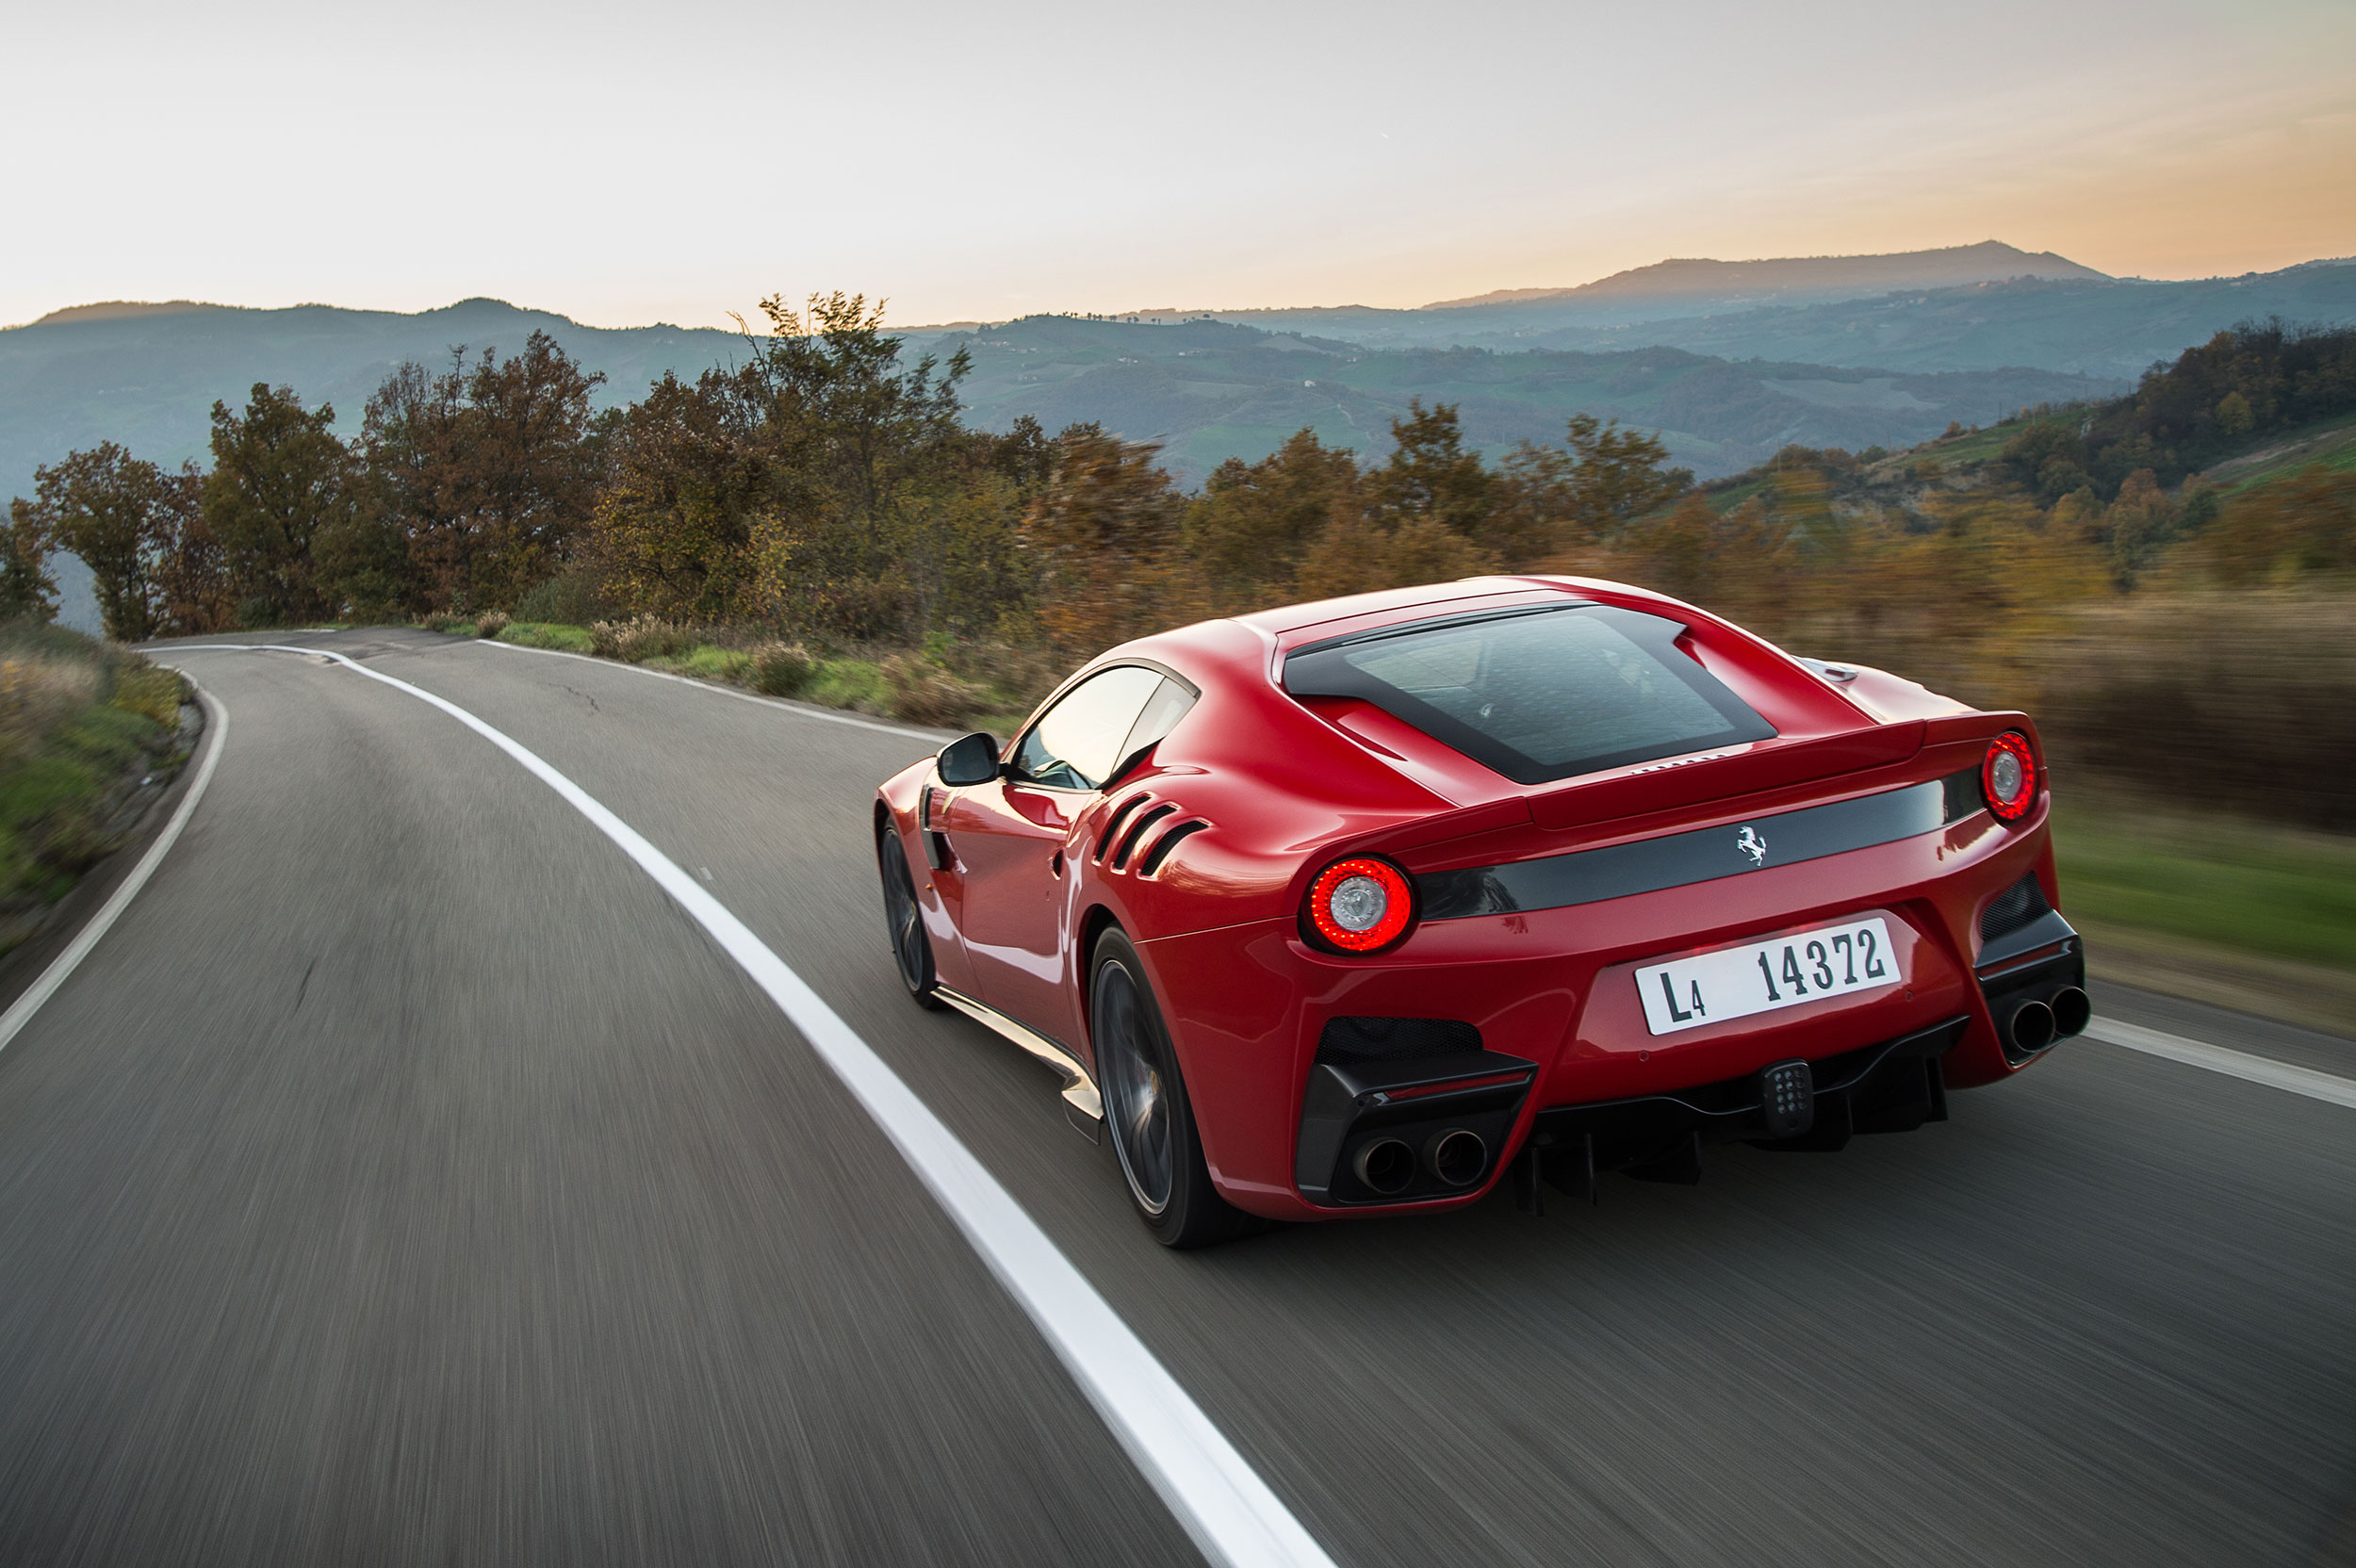 Ferrari F12 Tdf Review Prices Specs And 0 60 Time Evo